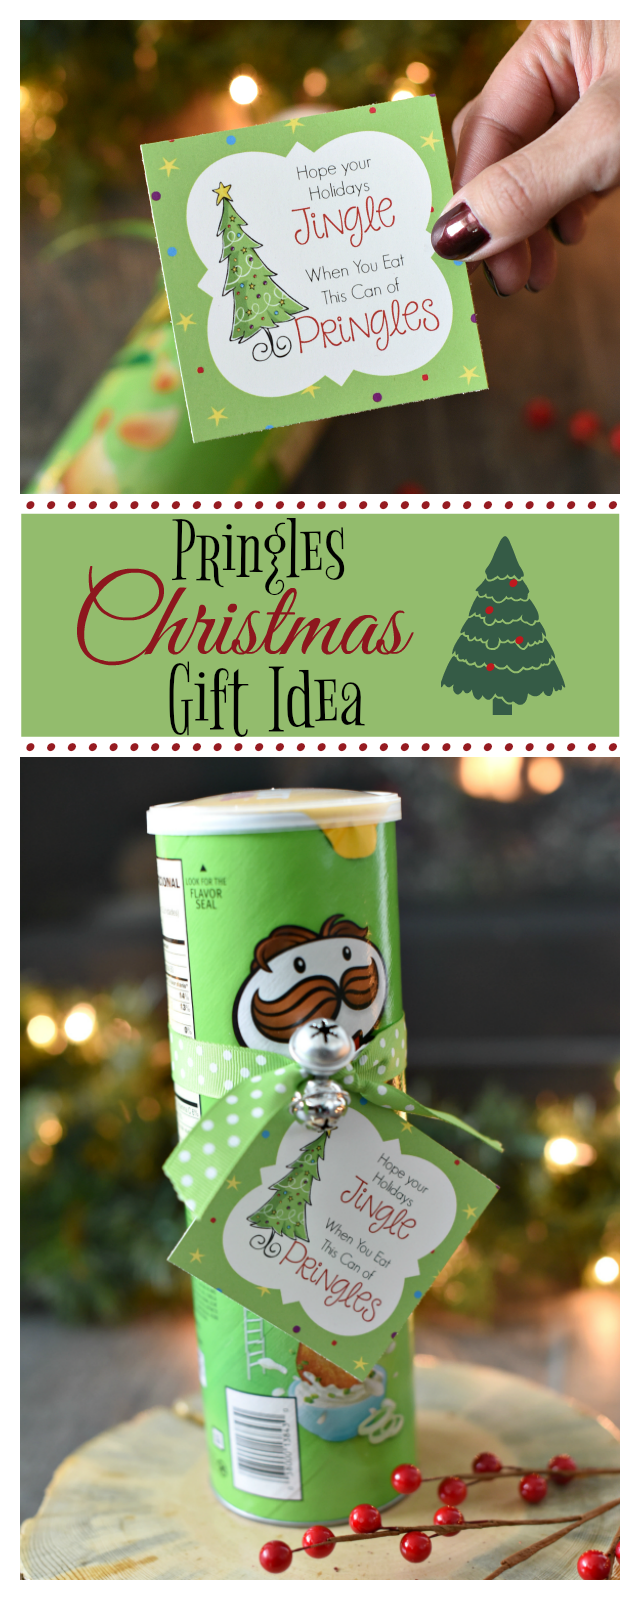 Fun Christmas Gifts 2020 Funny Christmas Gift Idea with Pringles in 2020 | Funny christmas